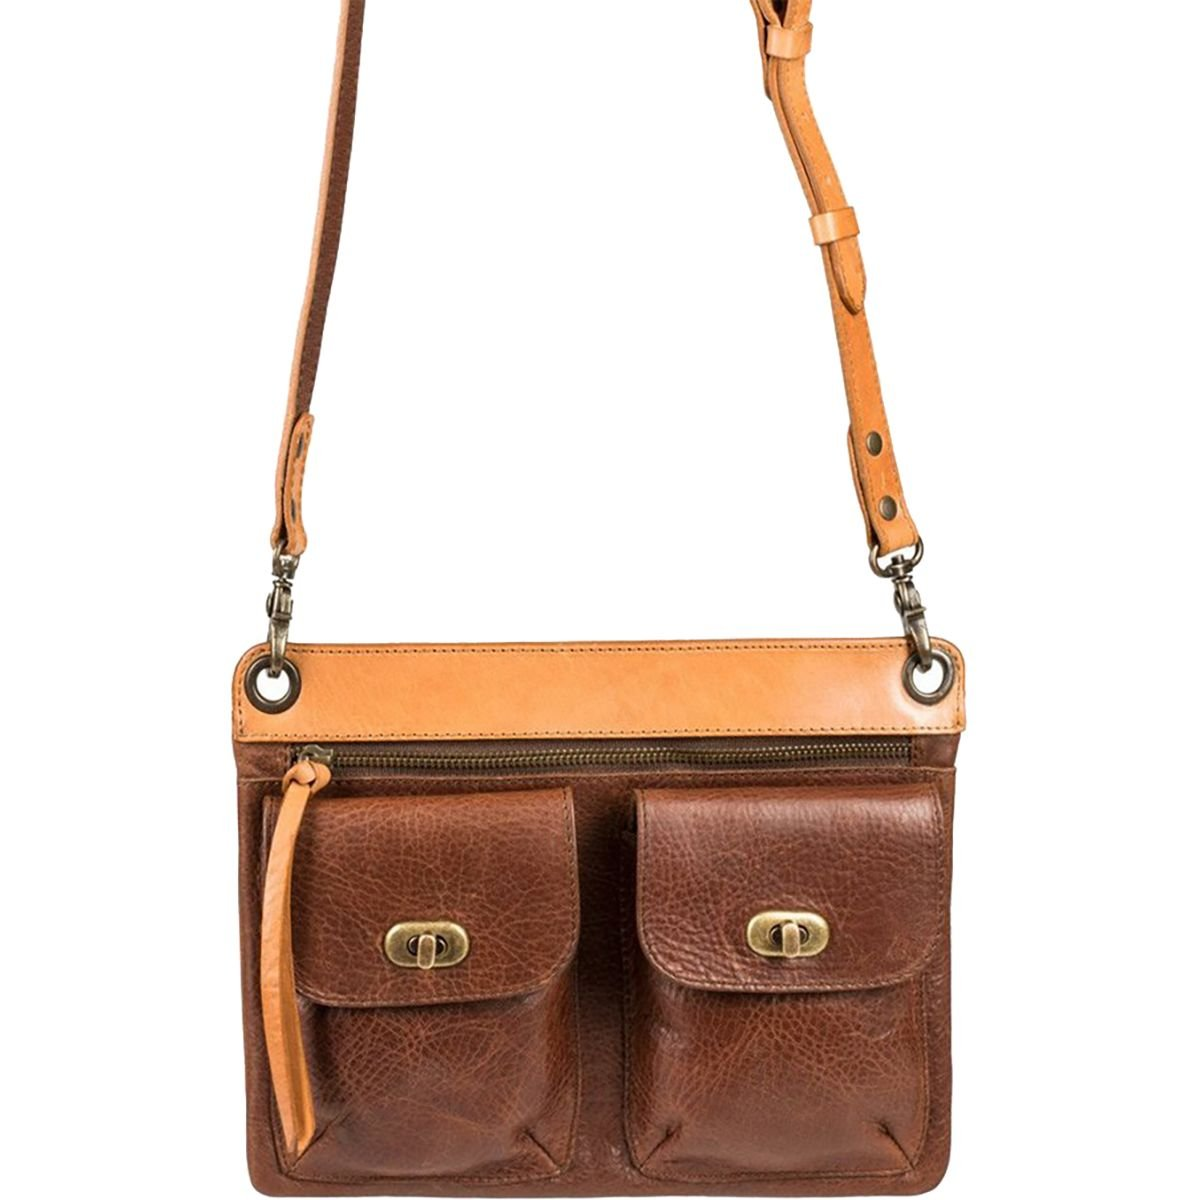 Will Leather Goods Vale Crossbody Purse Tan, One Size by Will Leather Goods